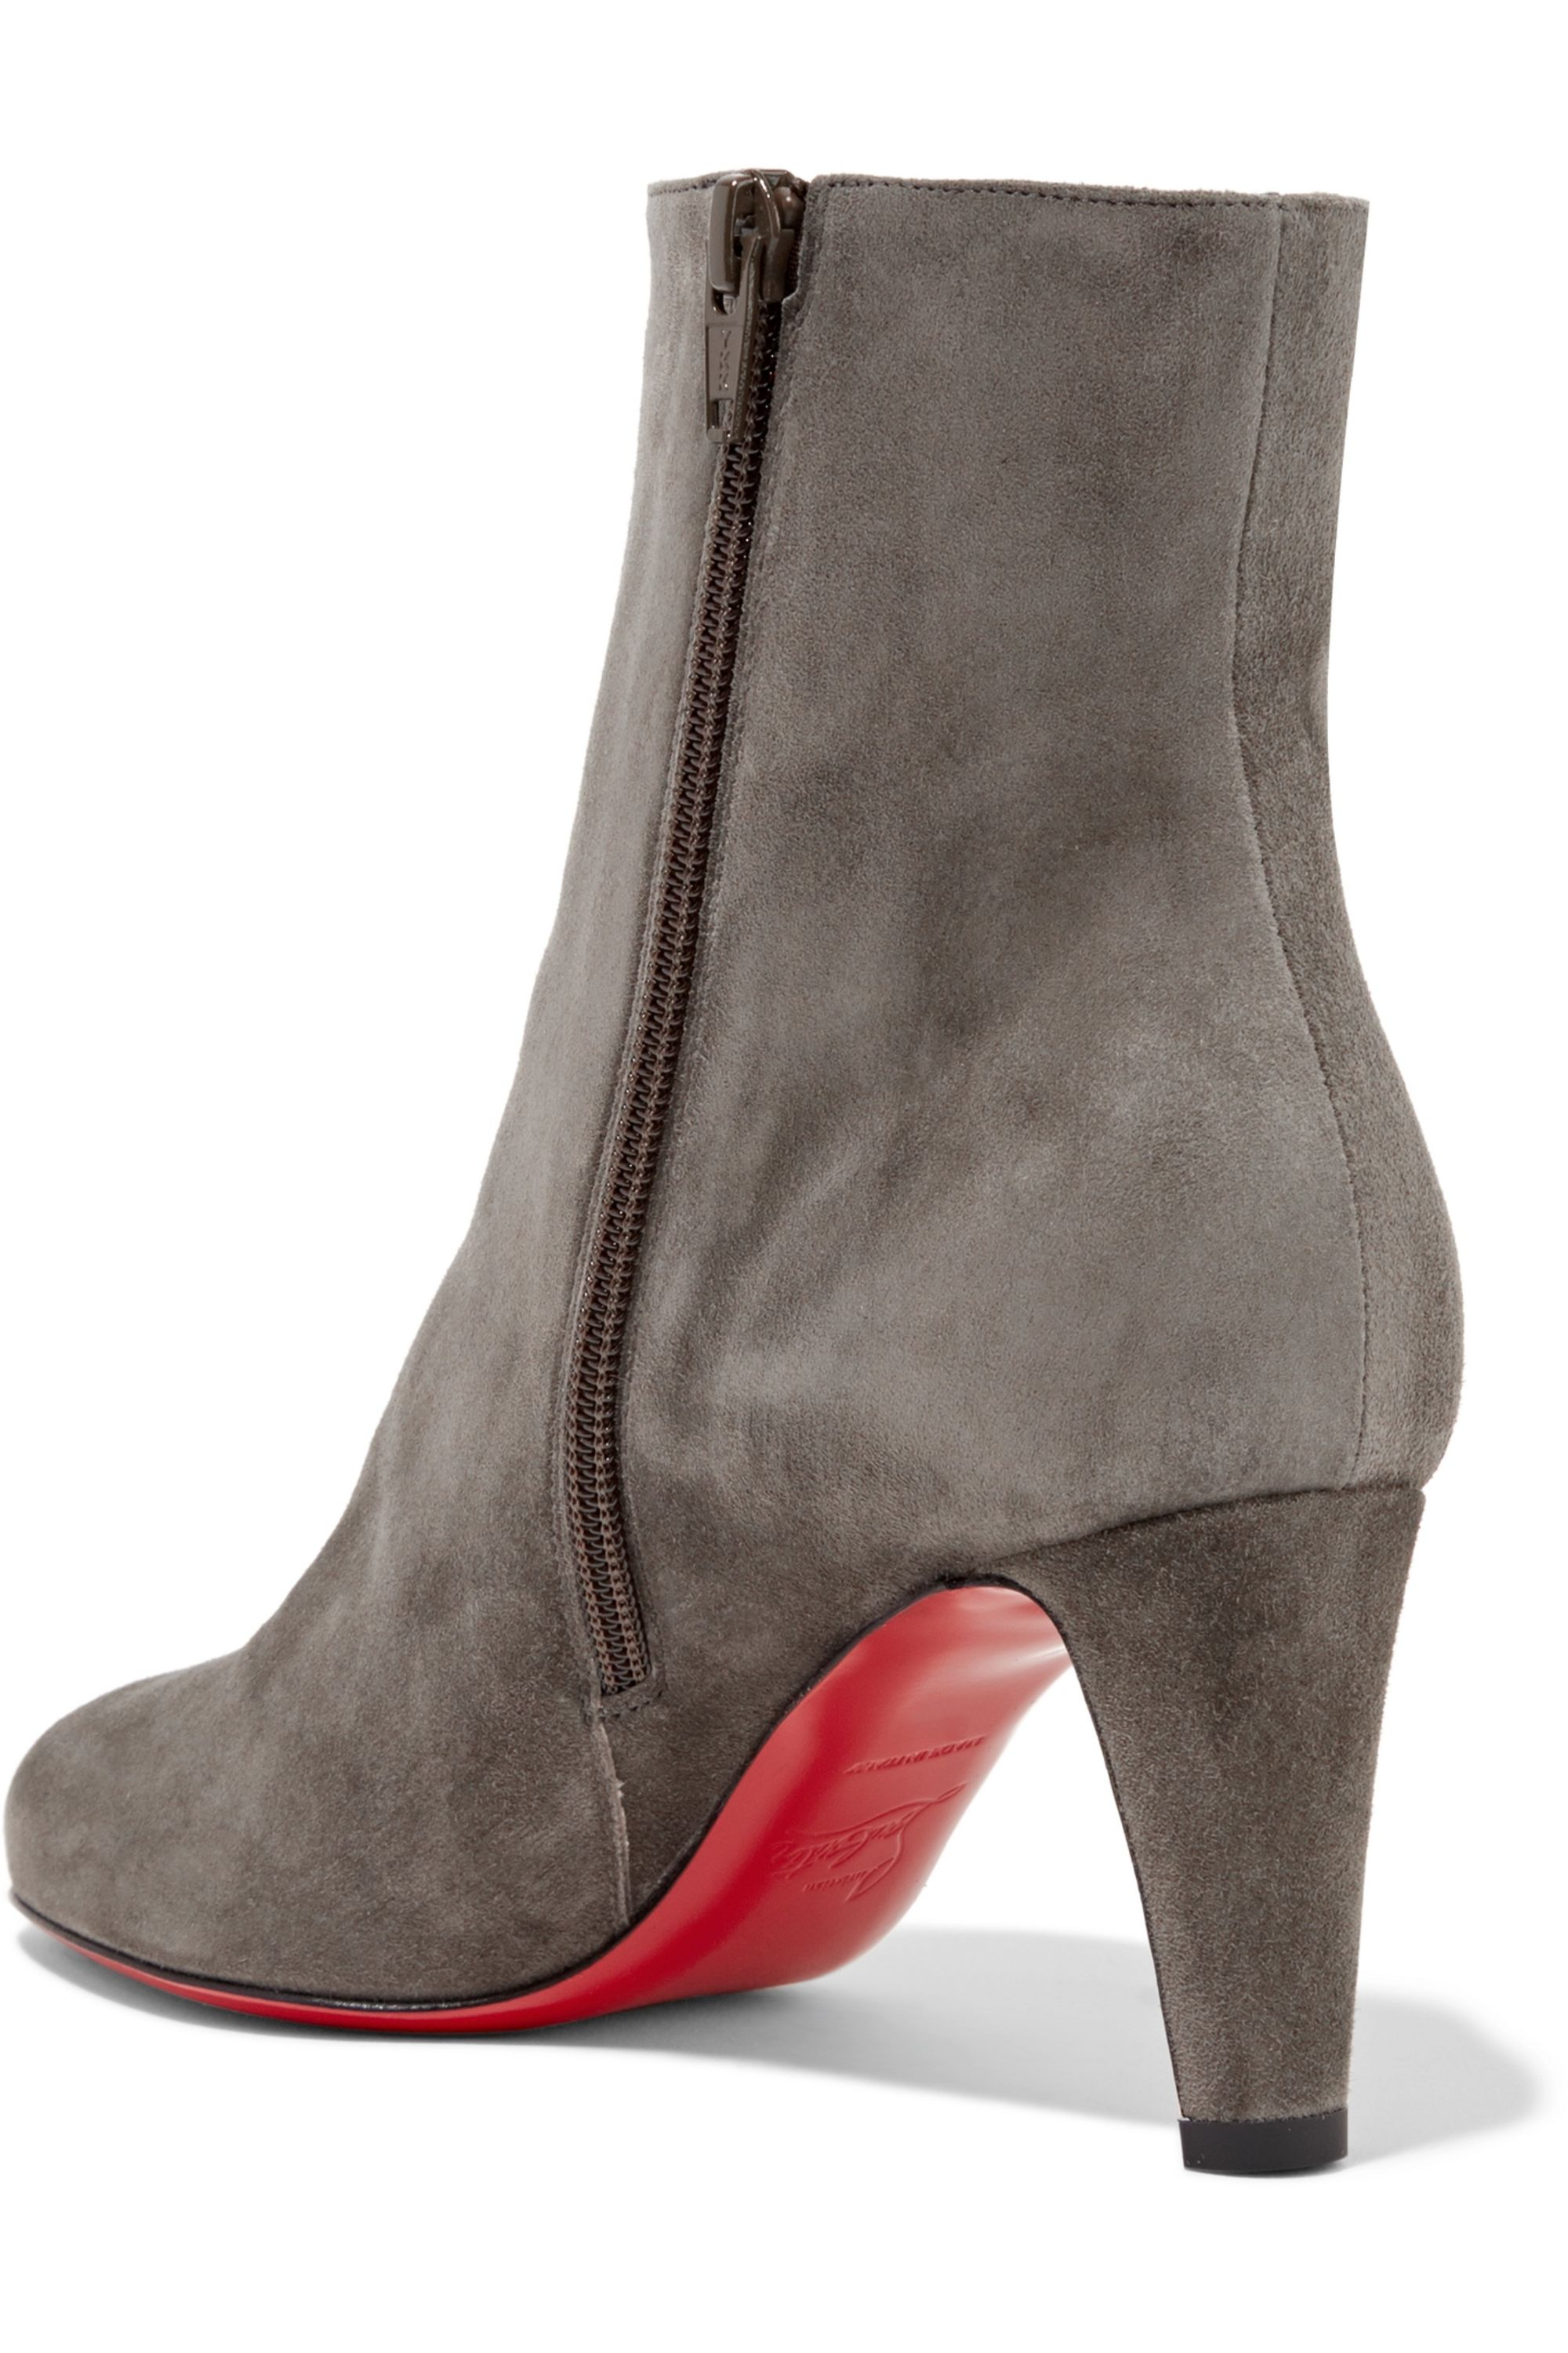 Christian Louboutin Top 70 suede ankle boots